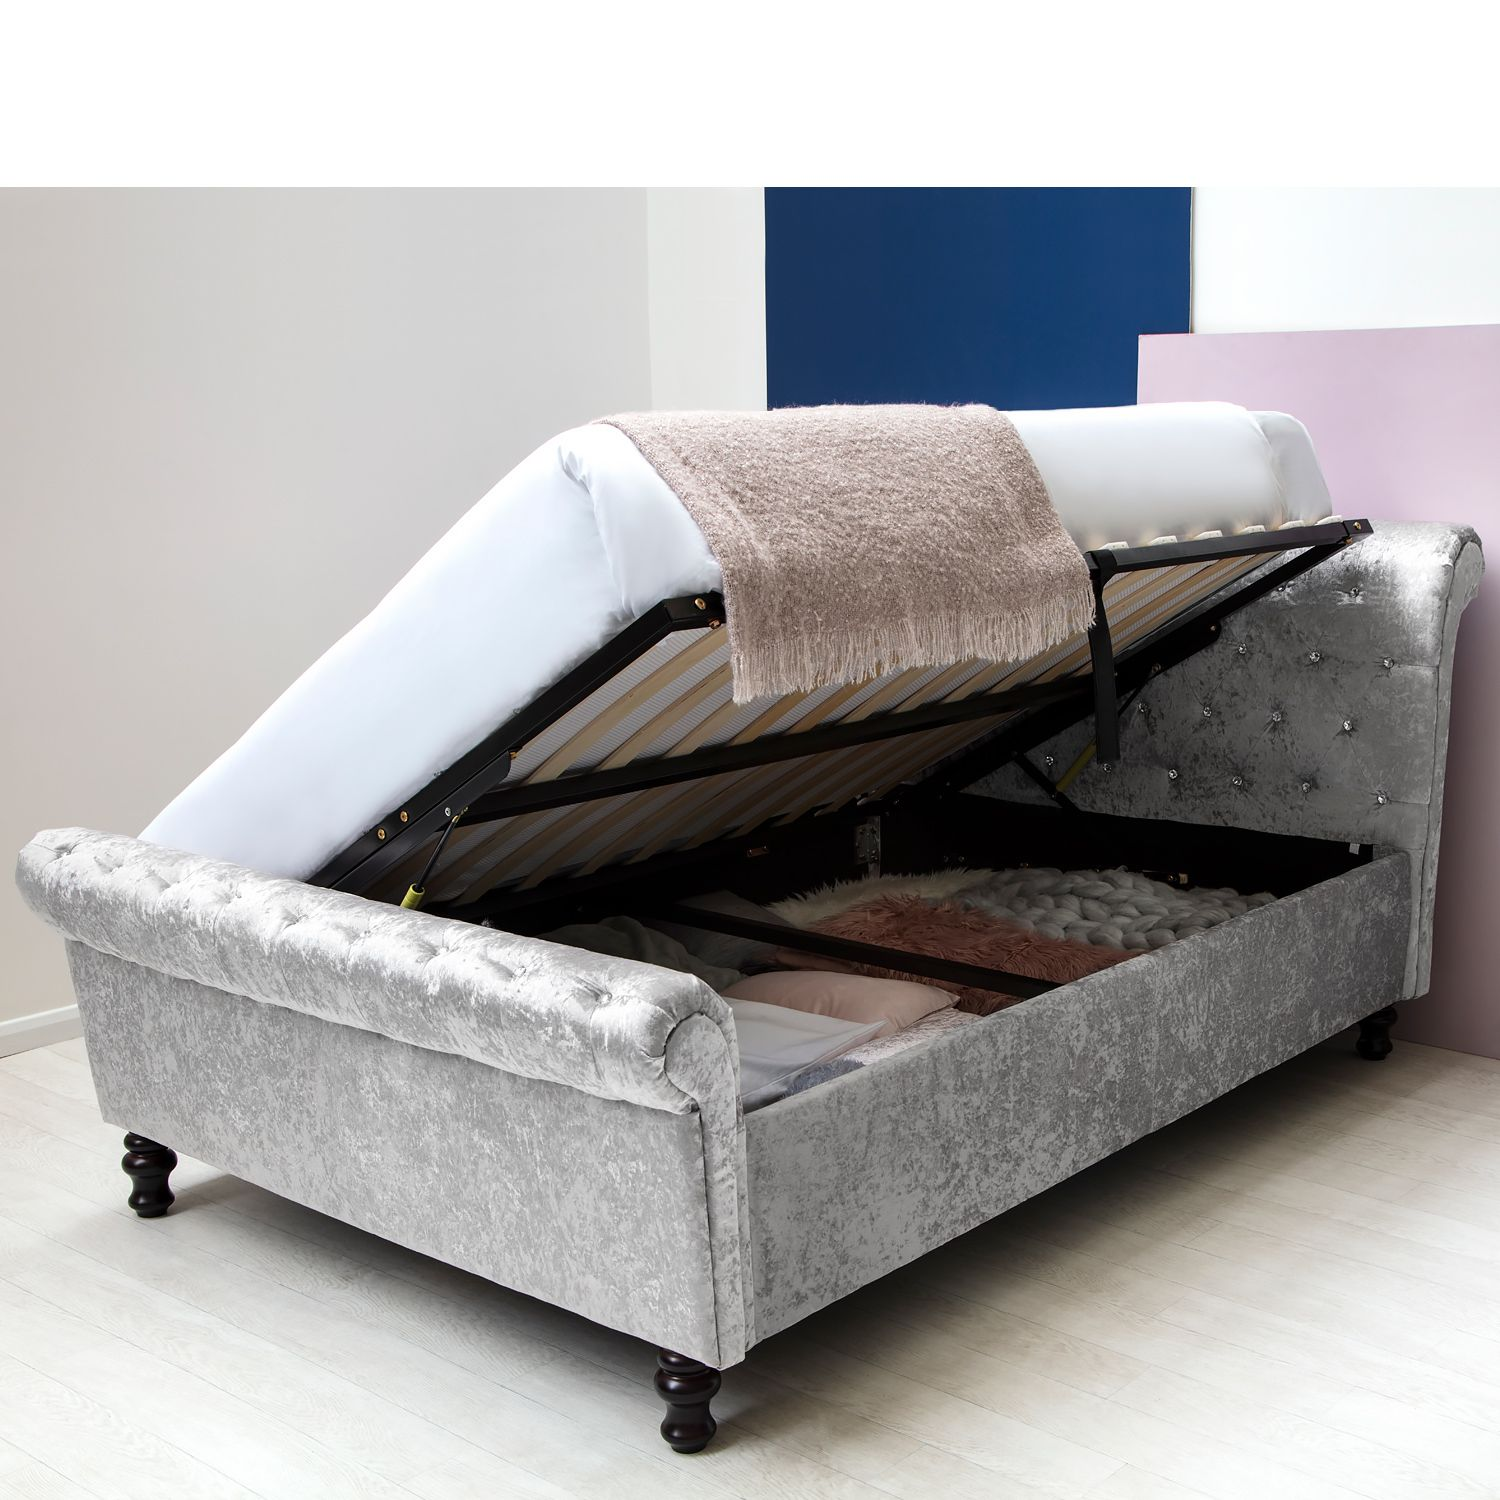 St James Silver Crushed Velvet Sleigh Ottoman Storage Bed Frame Double King Size Bed Frame With Storage Ottoman Storage Bed Upholstered Bed Frame